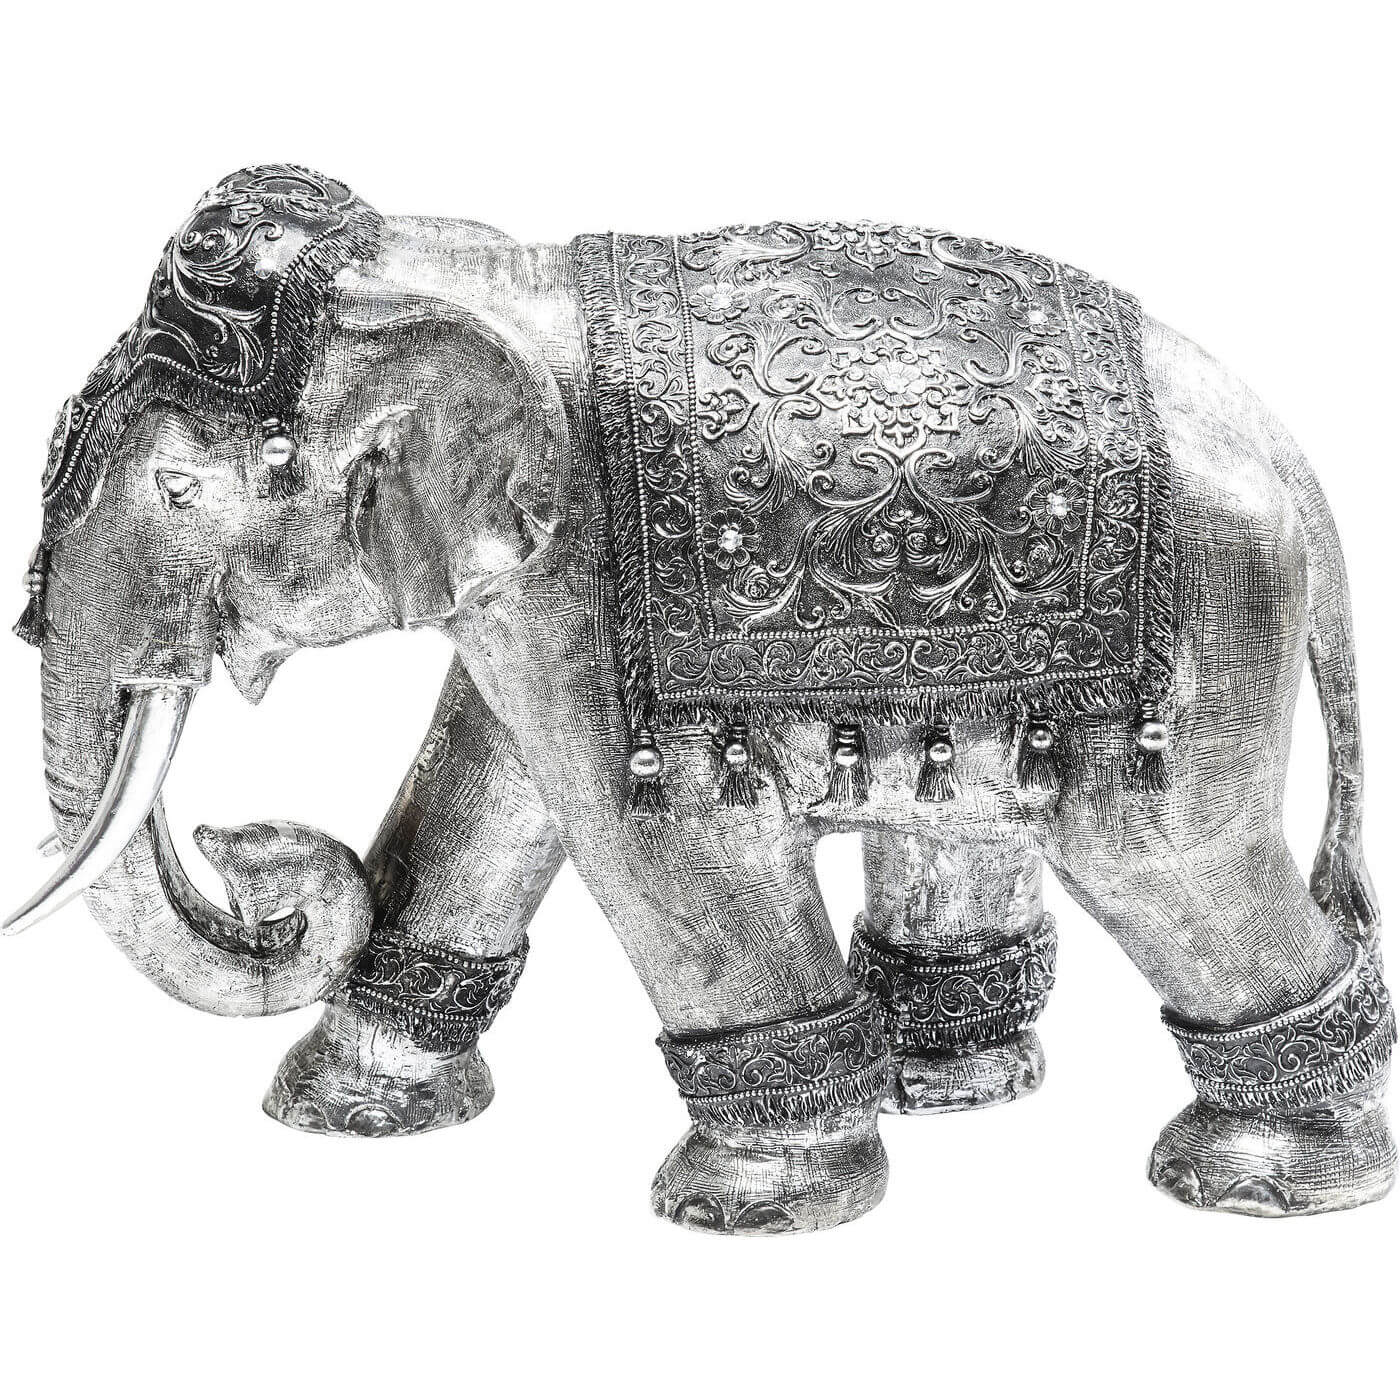 Image of   Kare Design Skulptur, Elefant 1001 Nights